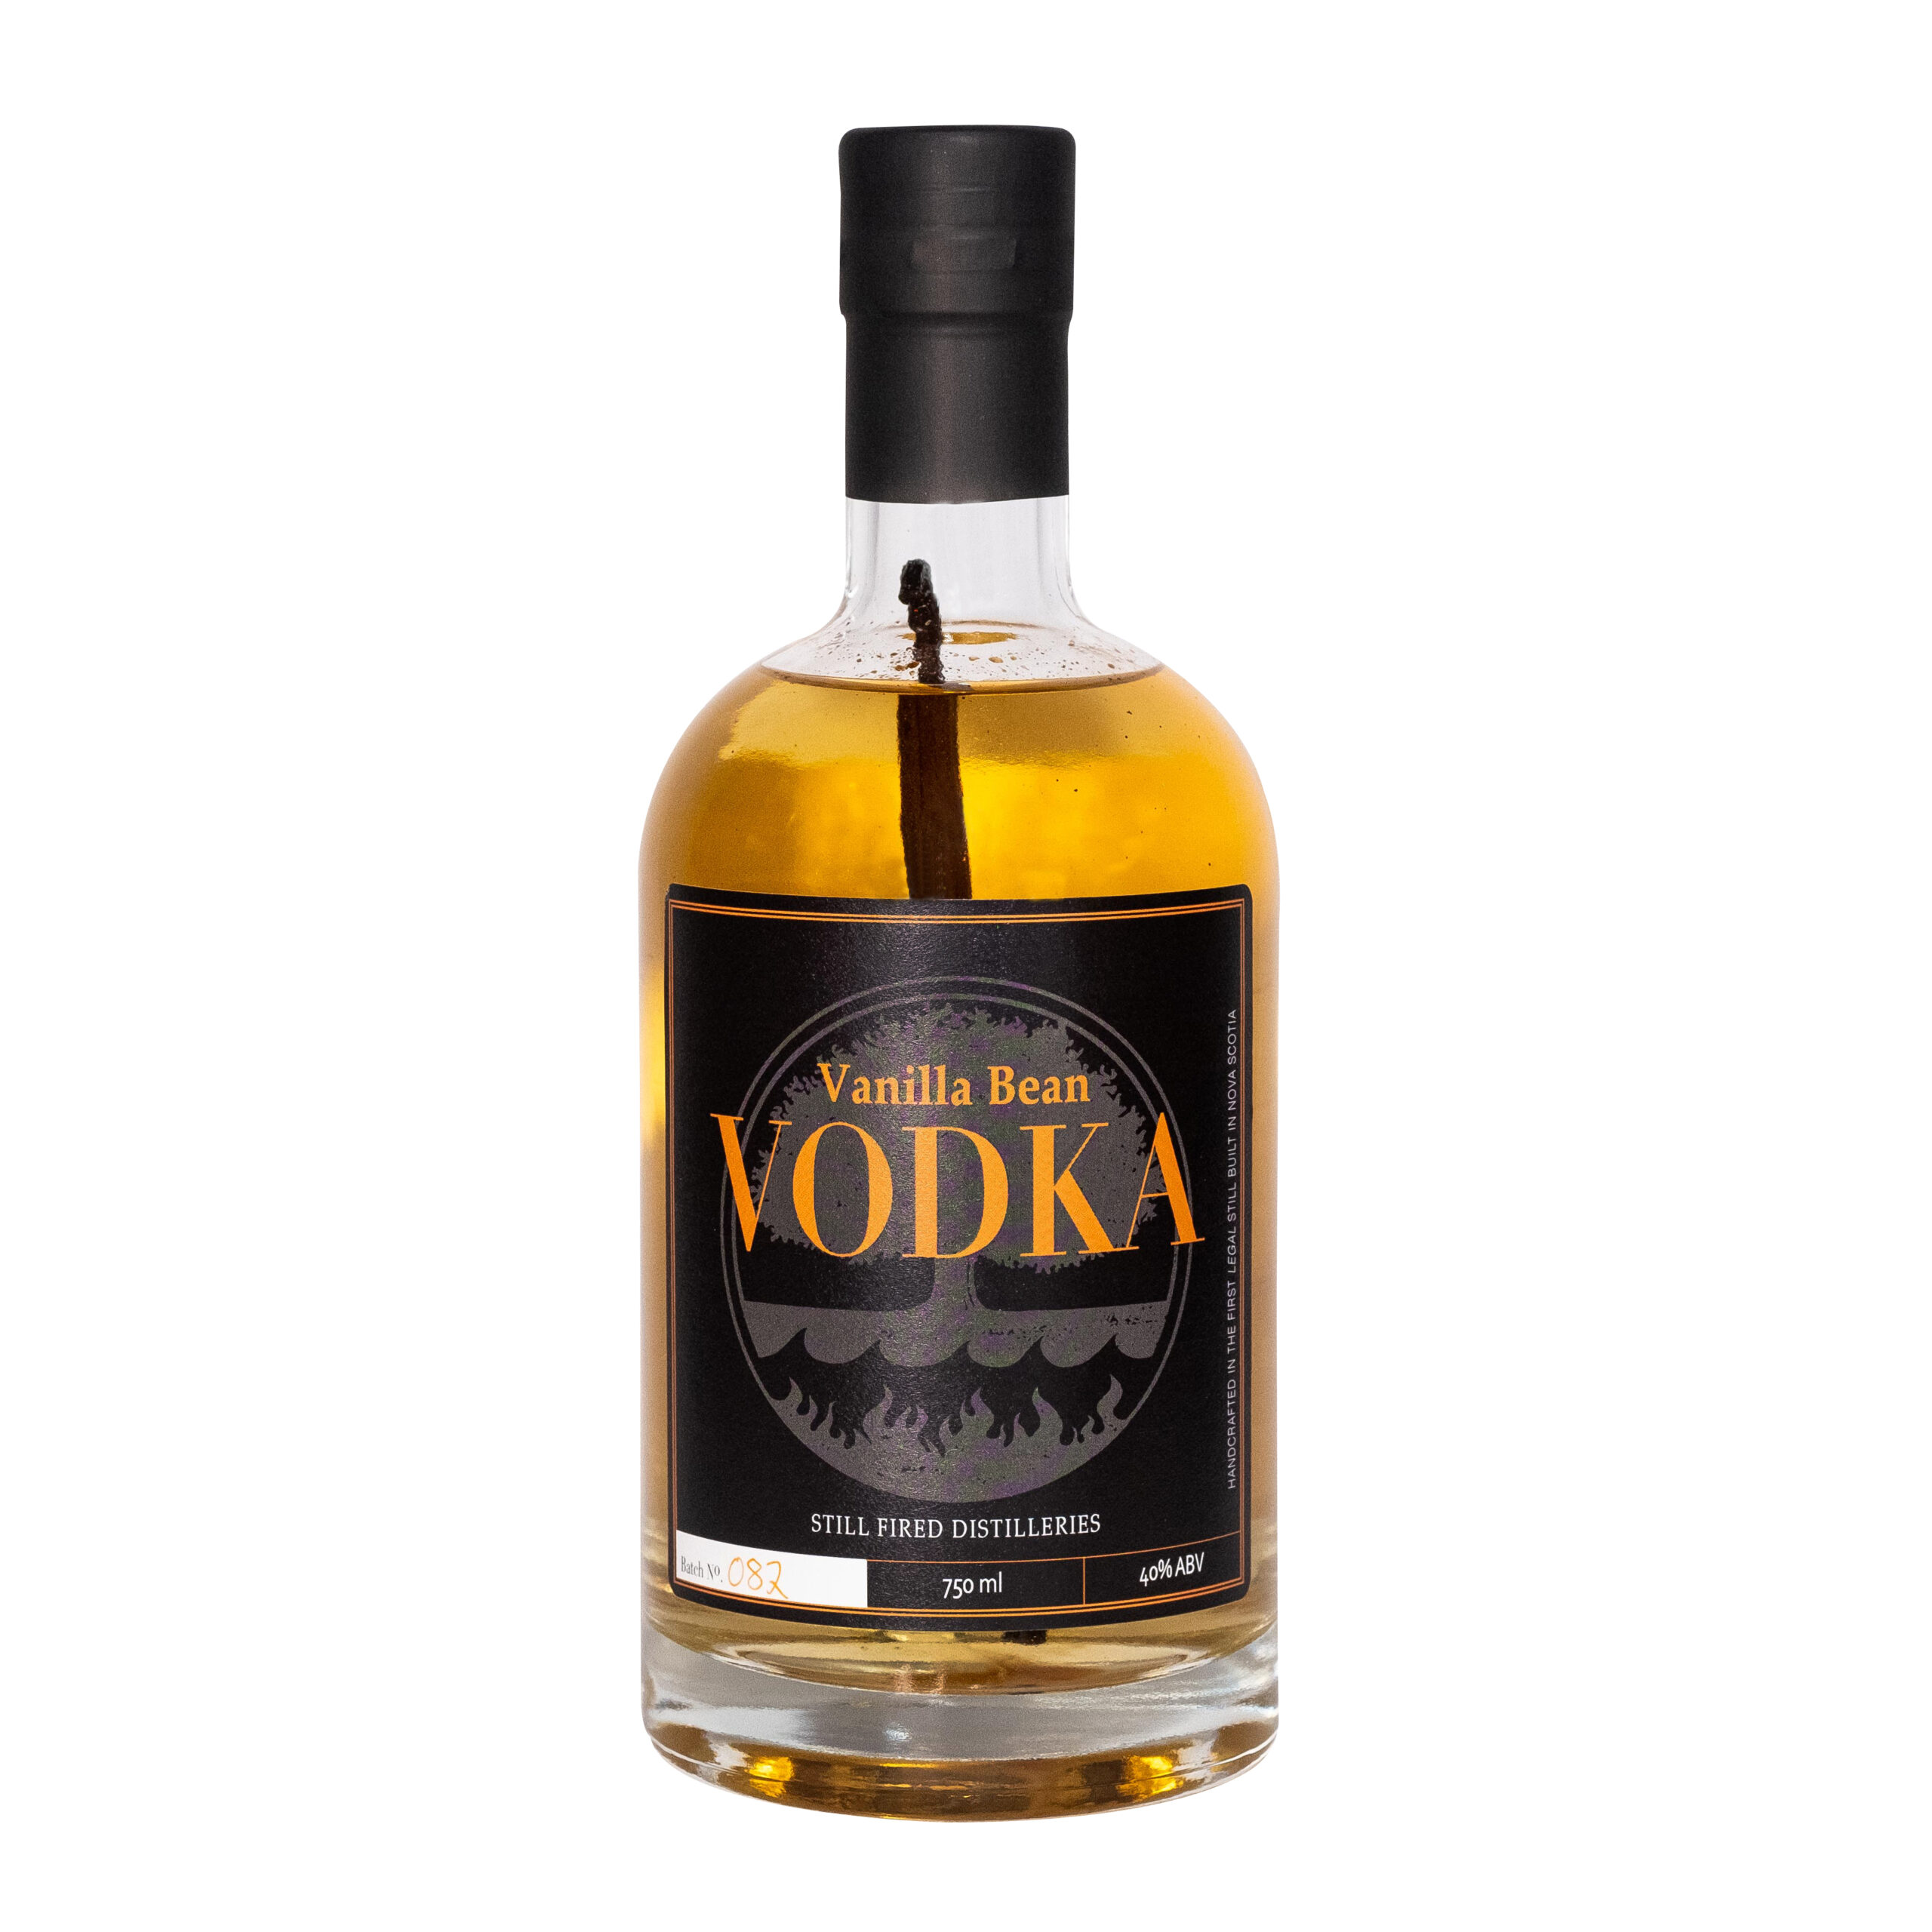 Vanilla Bean Vodka